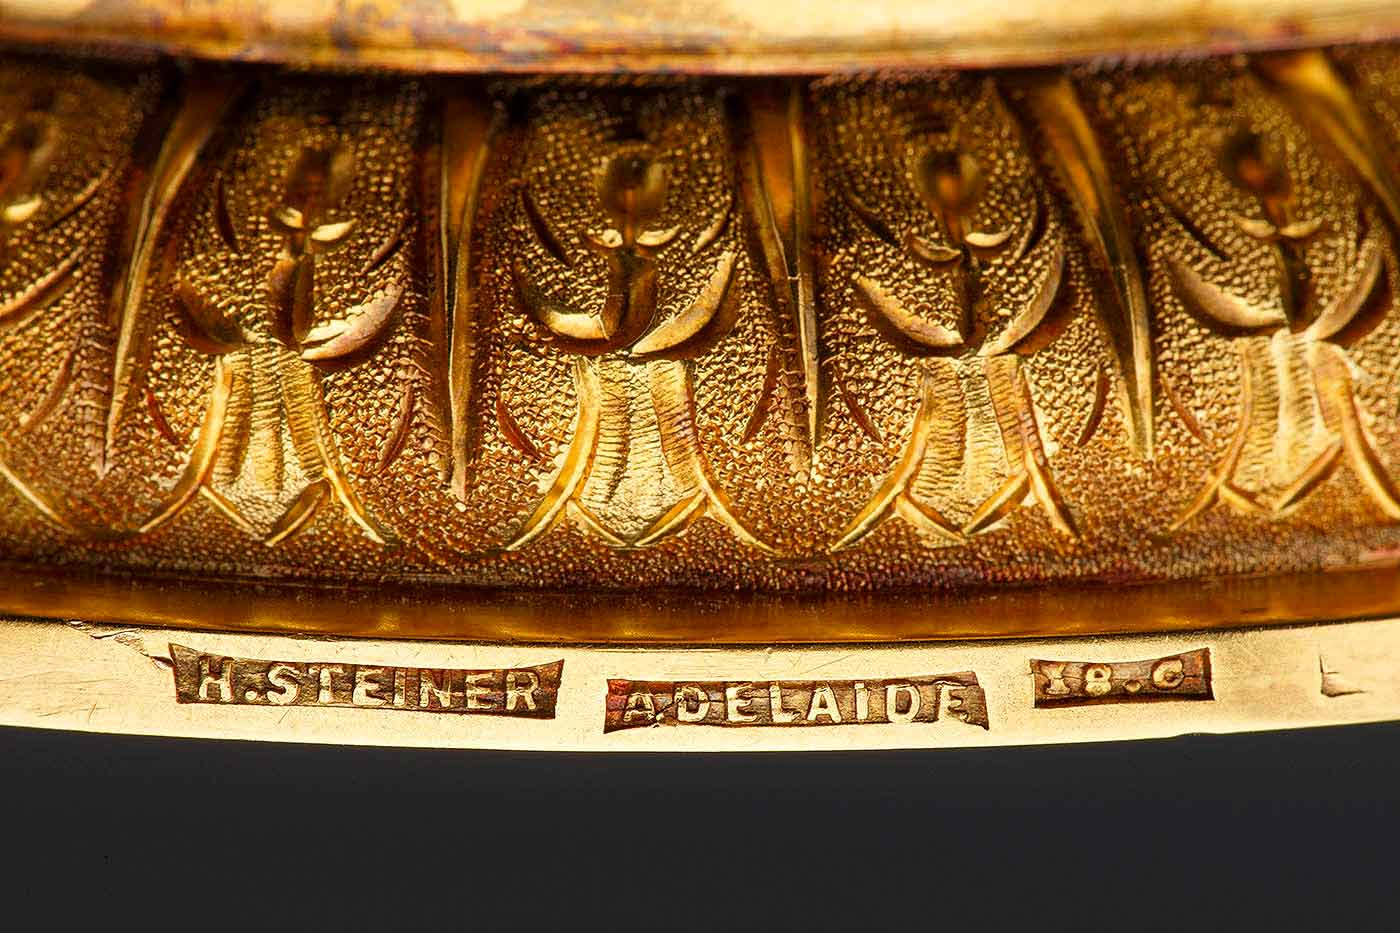 Detail of gold trophy base showing maker's mark: H Steiner / Adelaide / 18.c. - click to view larger image